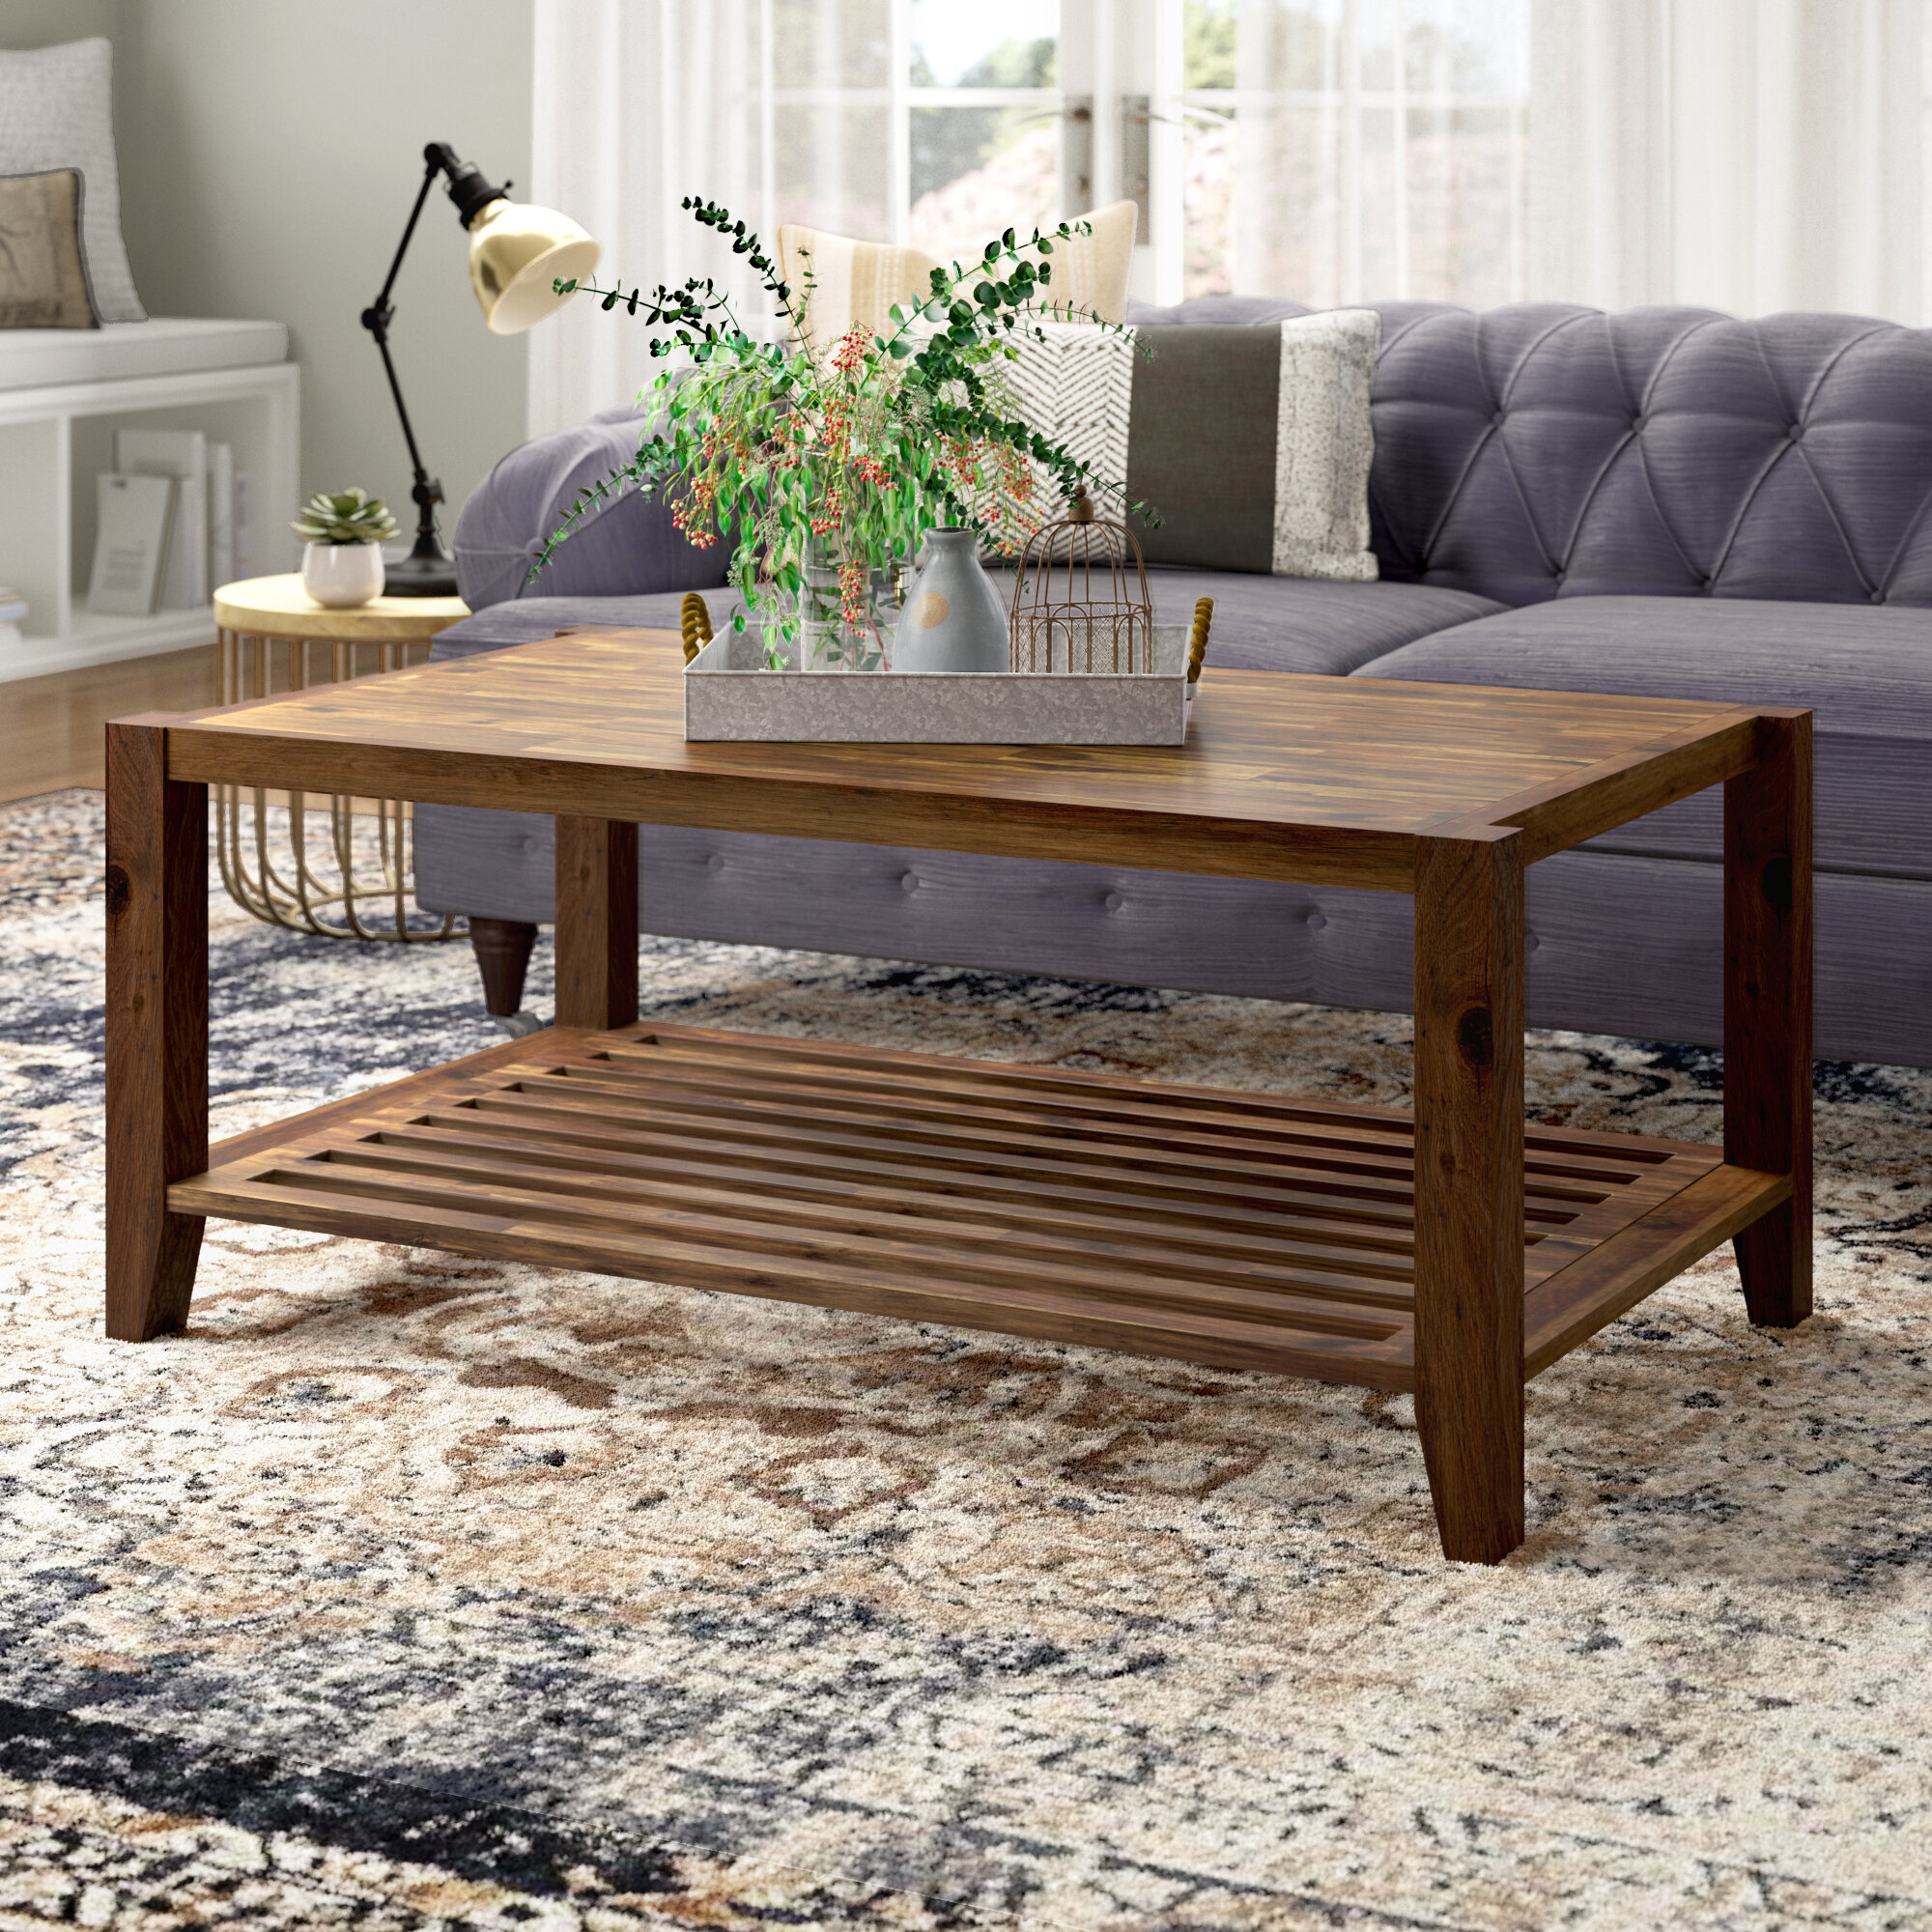 Laurel Foundry Modern Farmhouse Athena Solid Wood Coffee Table With Storage Reviews Wayfair